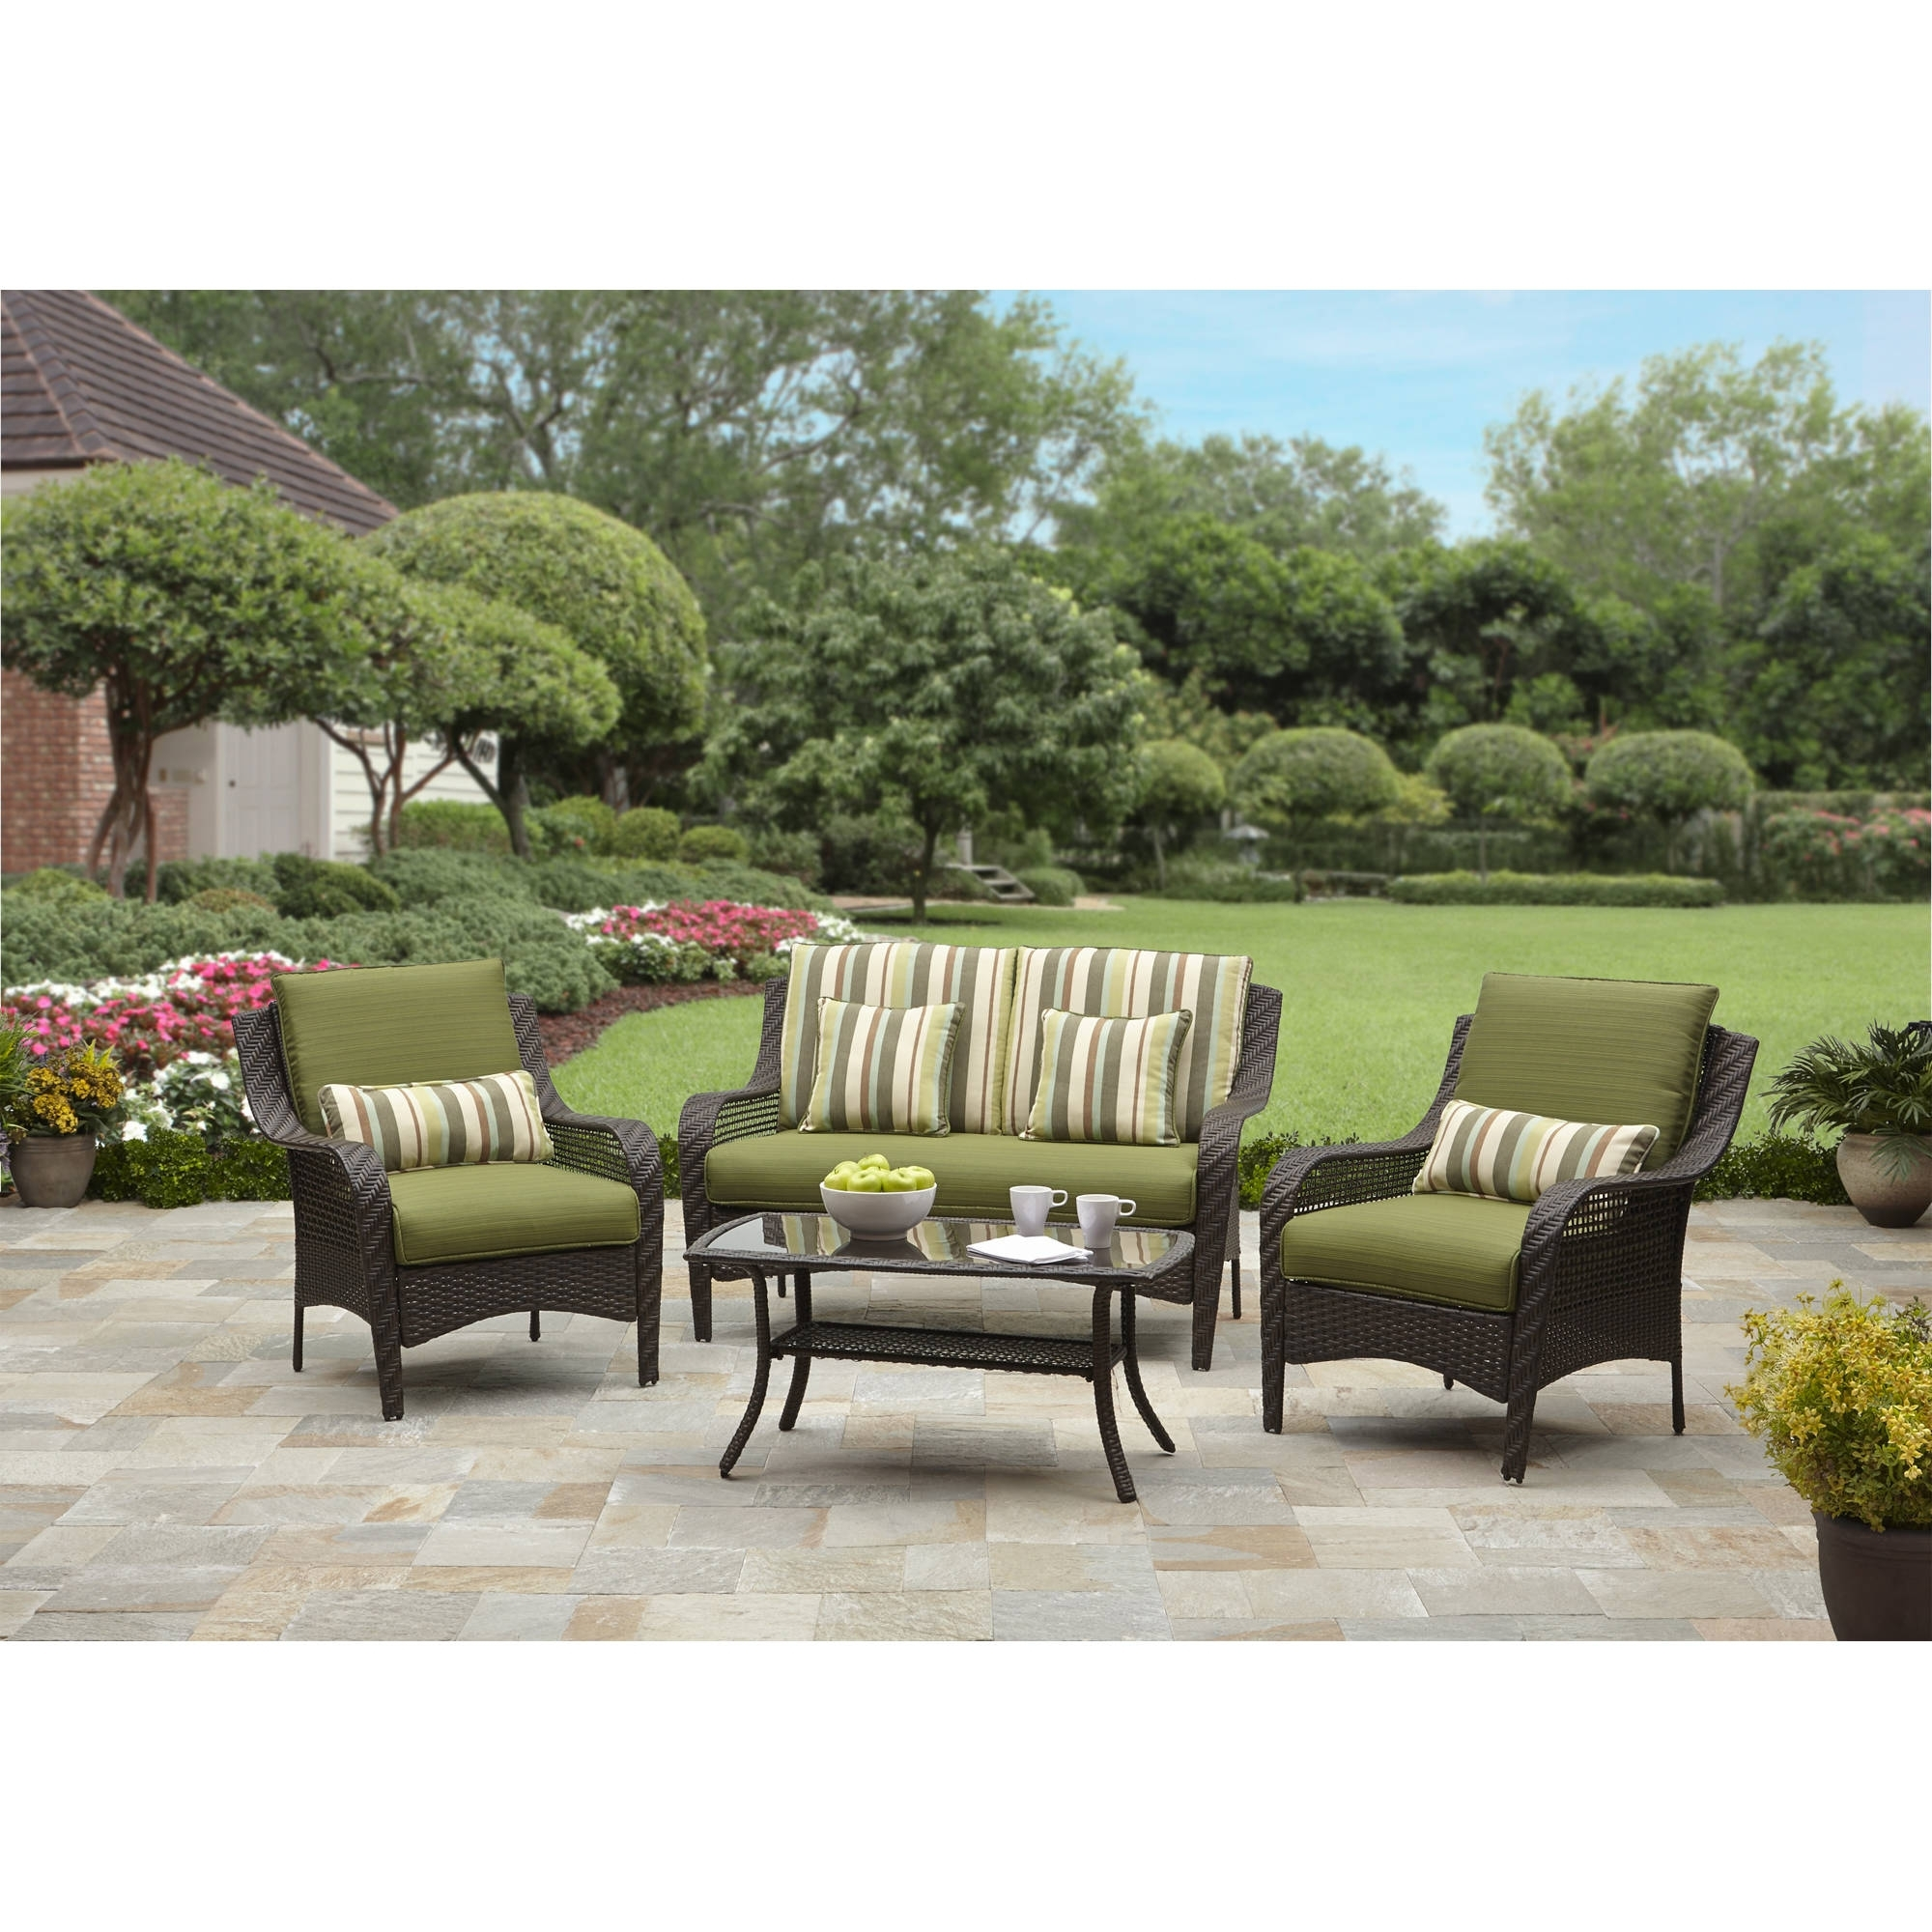 Better Homes And Gardens Amelia Cove 4 Piece Woven Patio With Preferred Walmart Patio Furniture Conversation Sets (View 5 of 15)